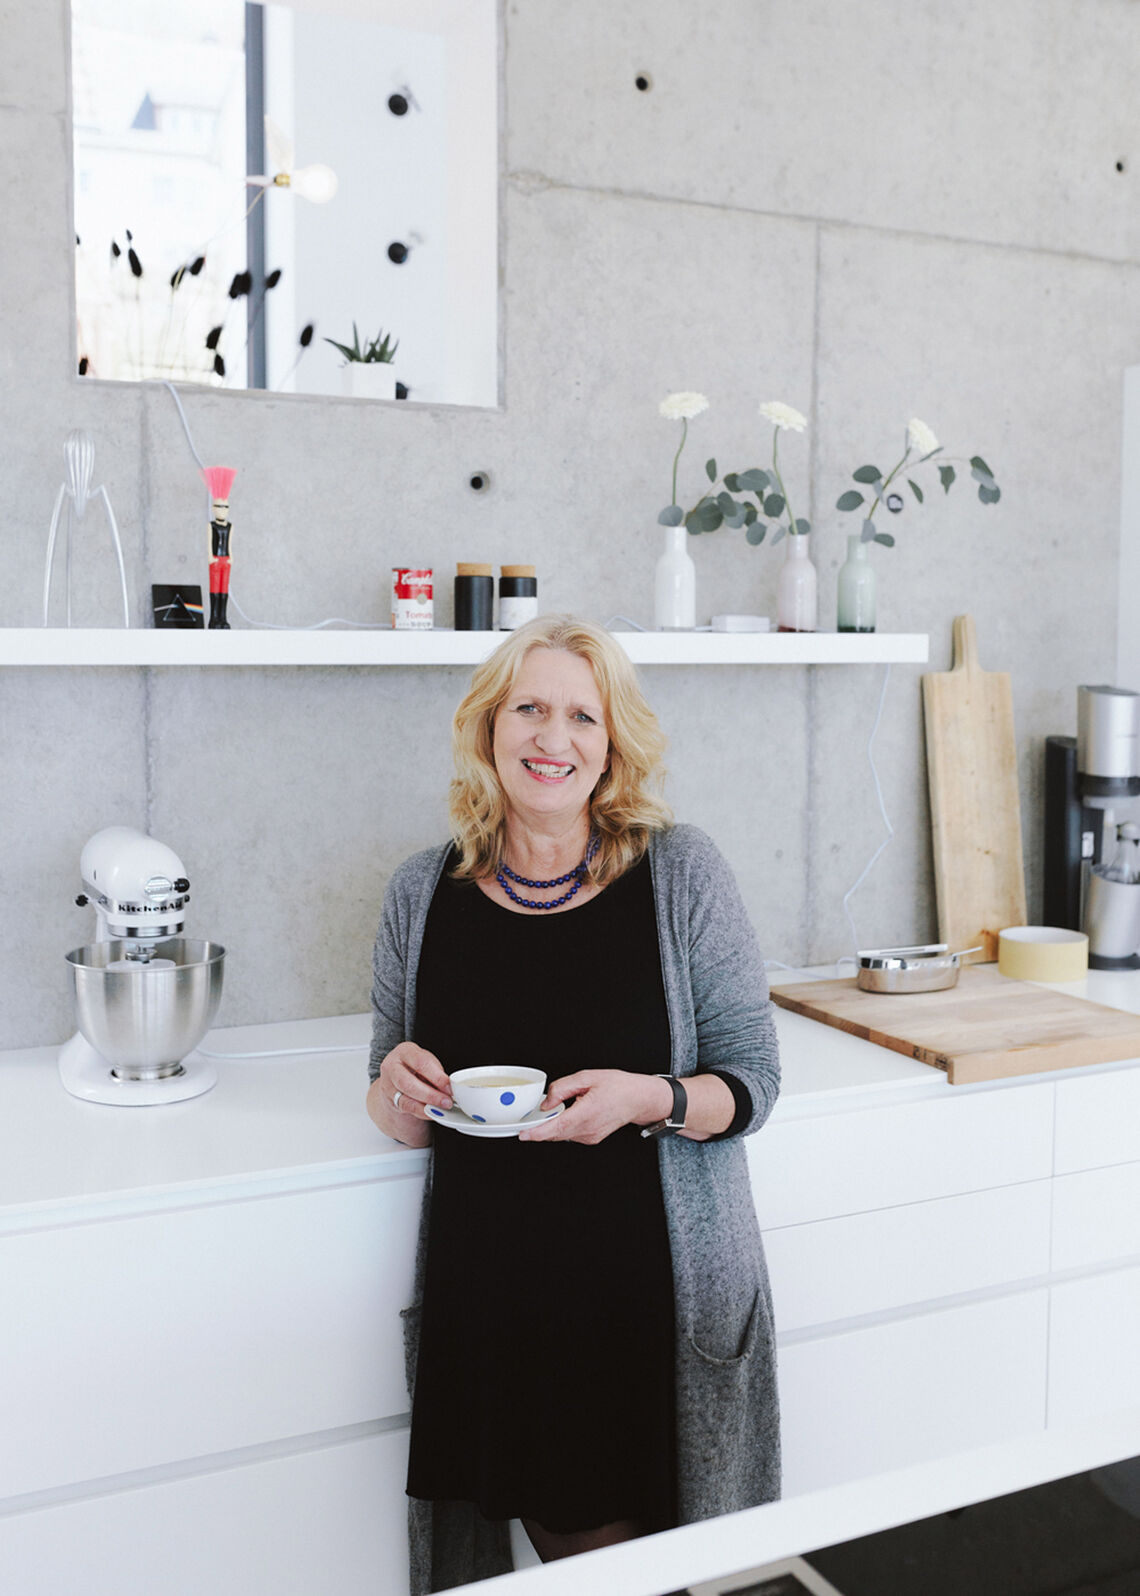 Middle-aged blonde woman stands in modern kitchen and holds a cup in her hand